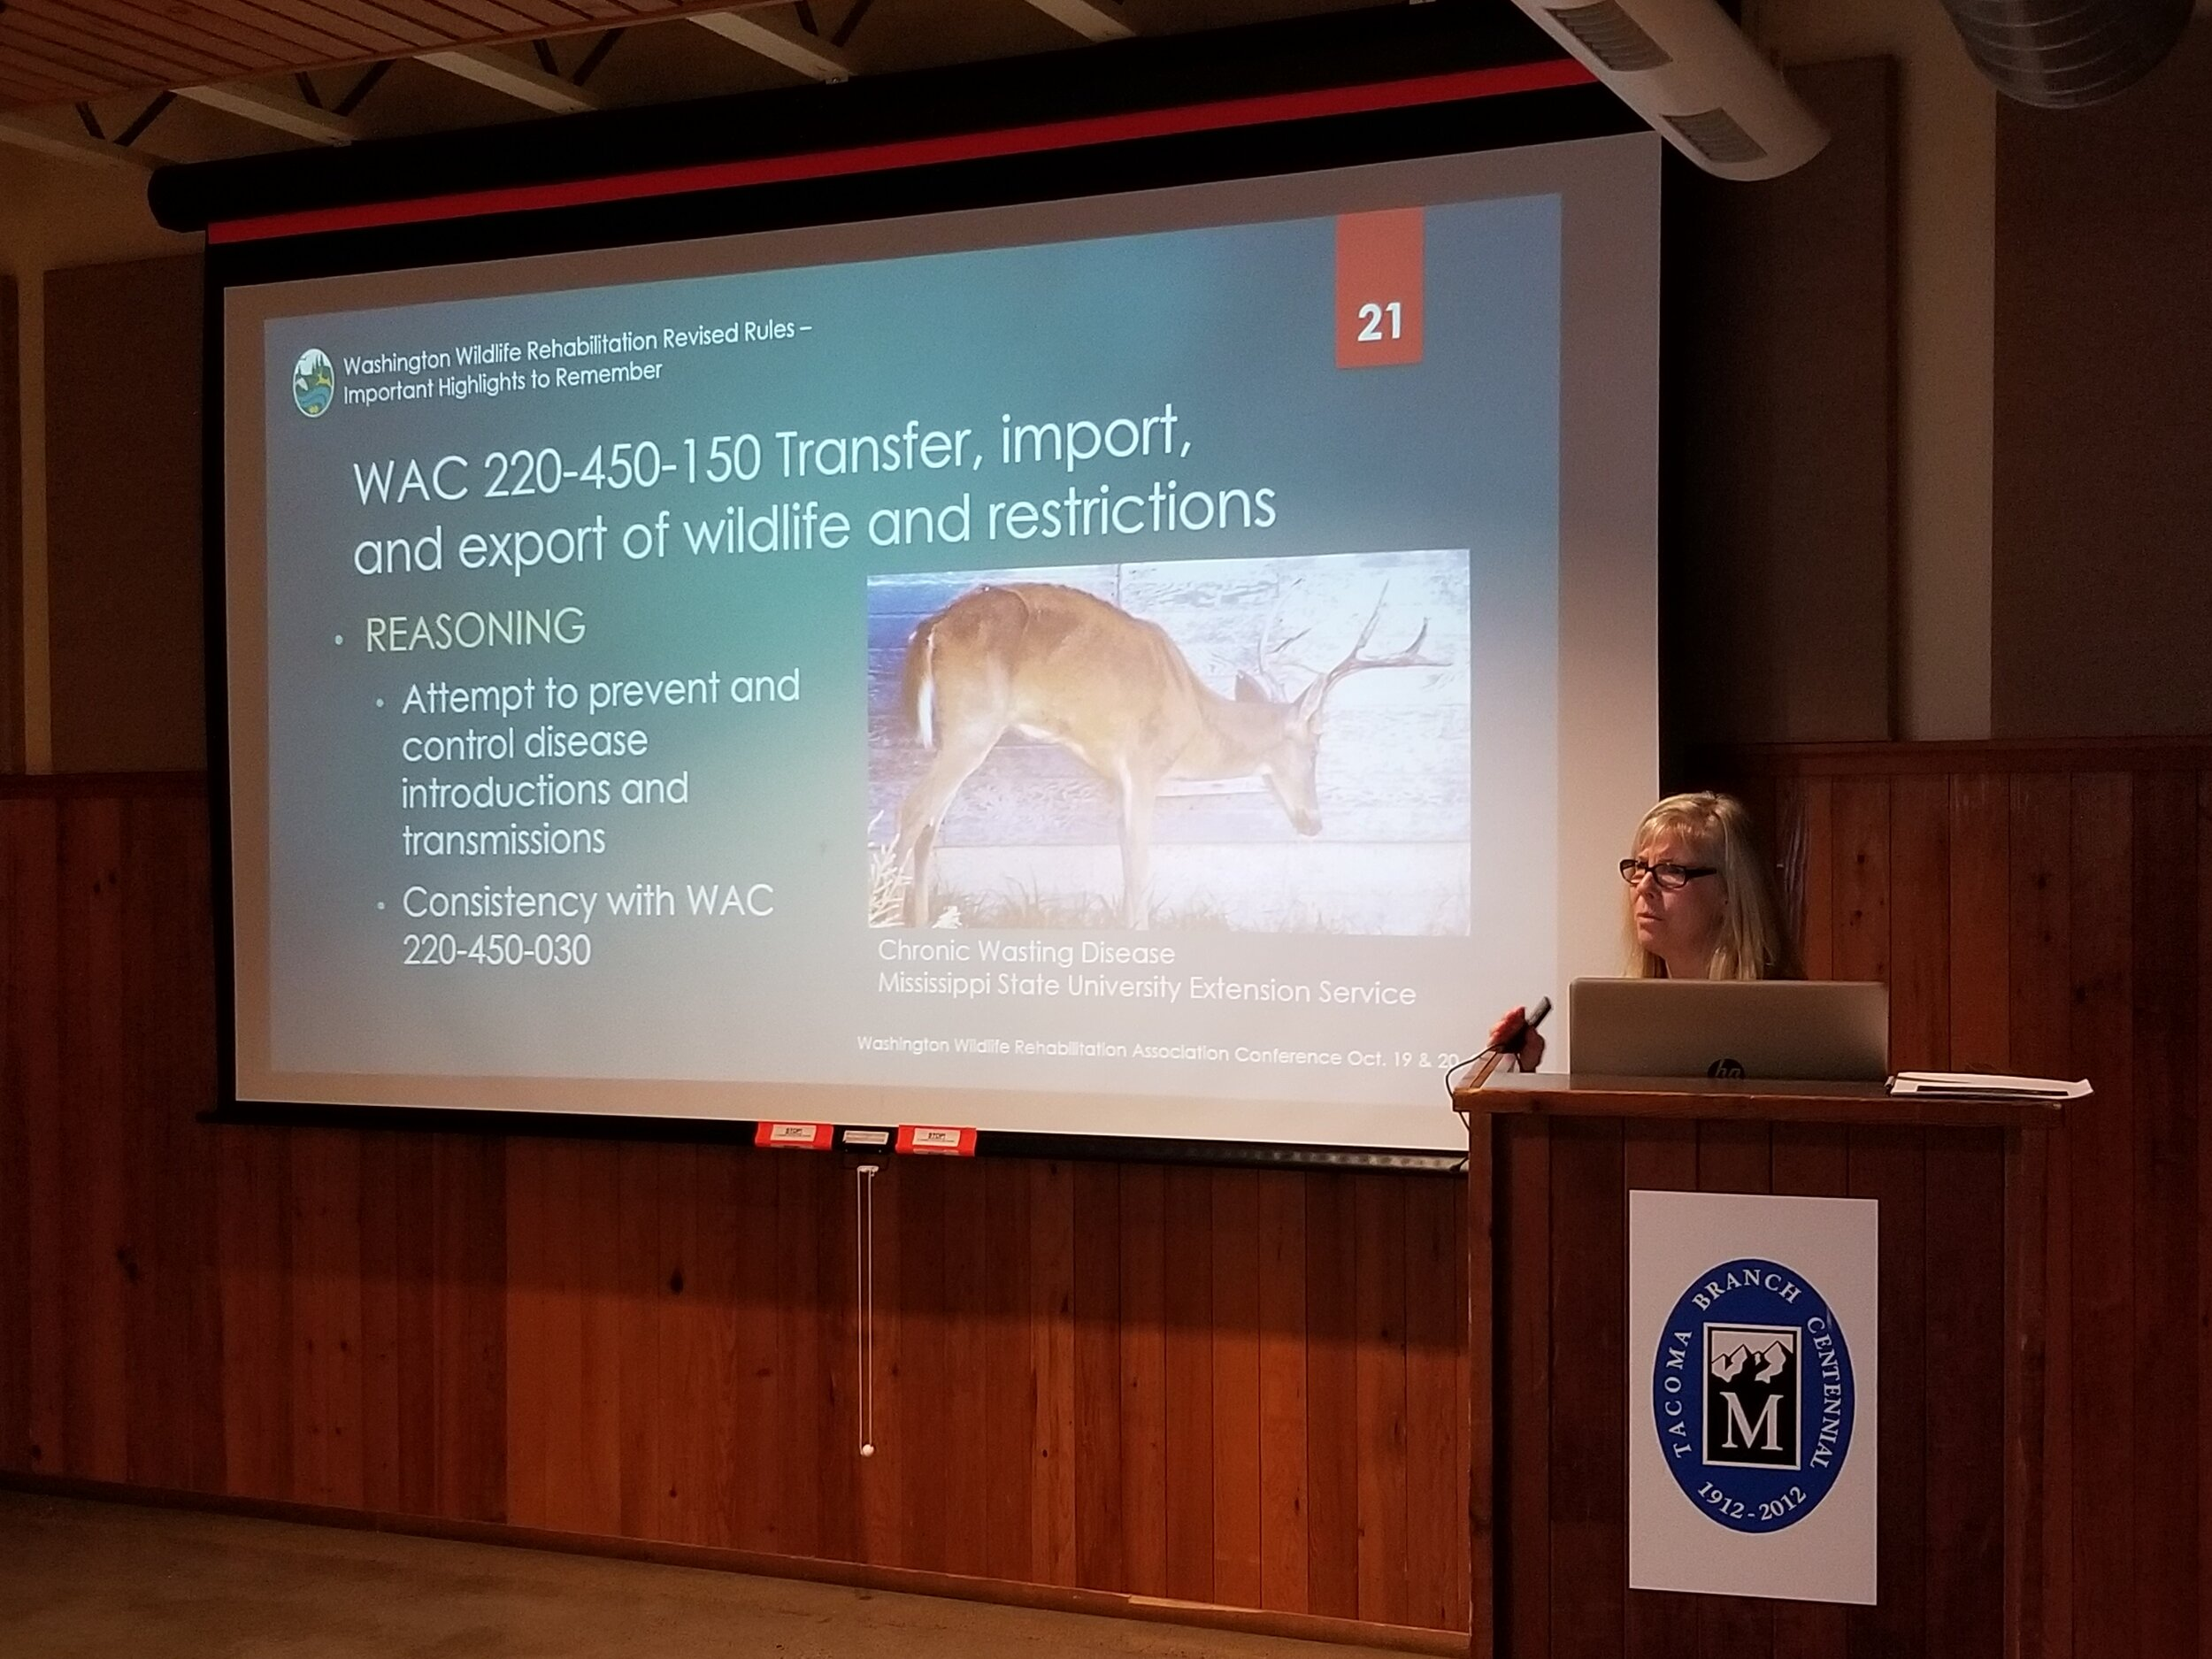 Patricia Thompson discussing Chronic Wasting Disease (CWD)